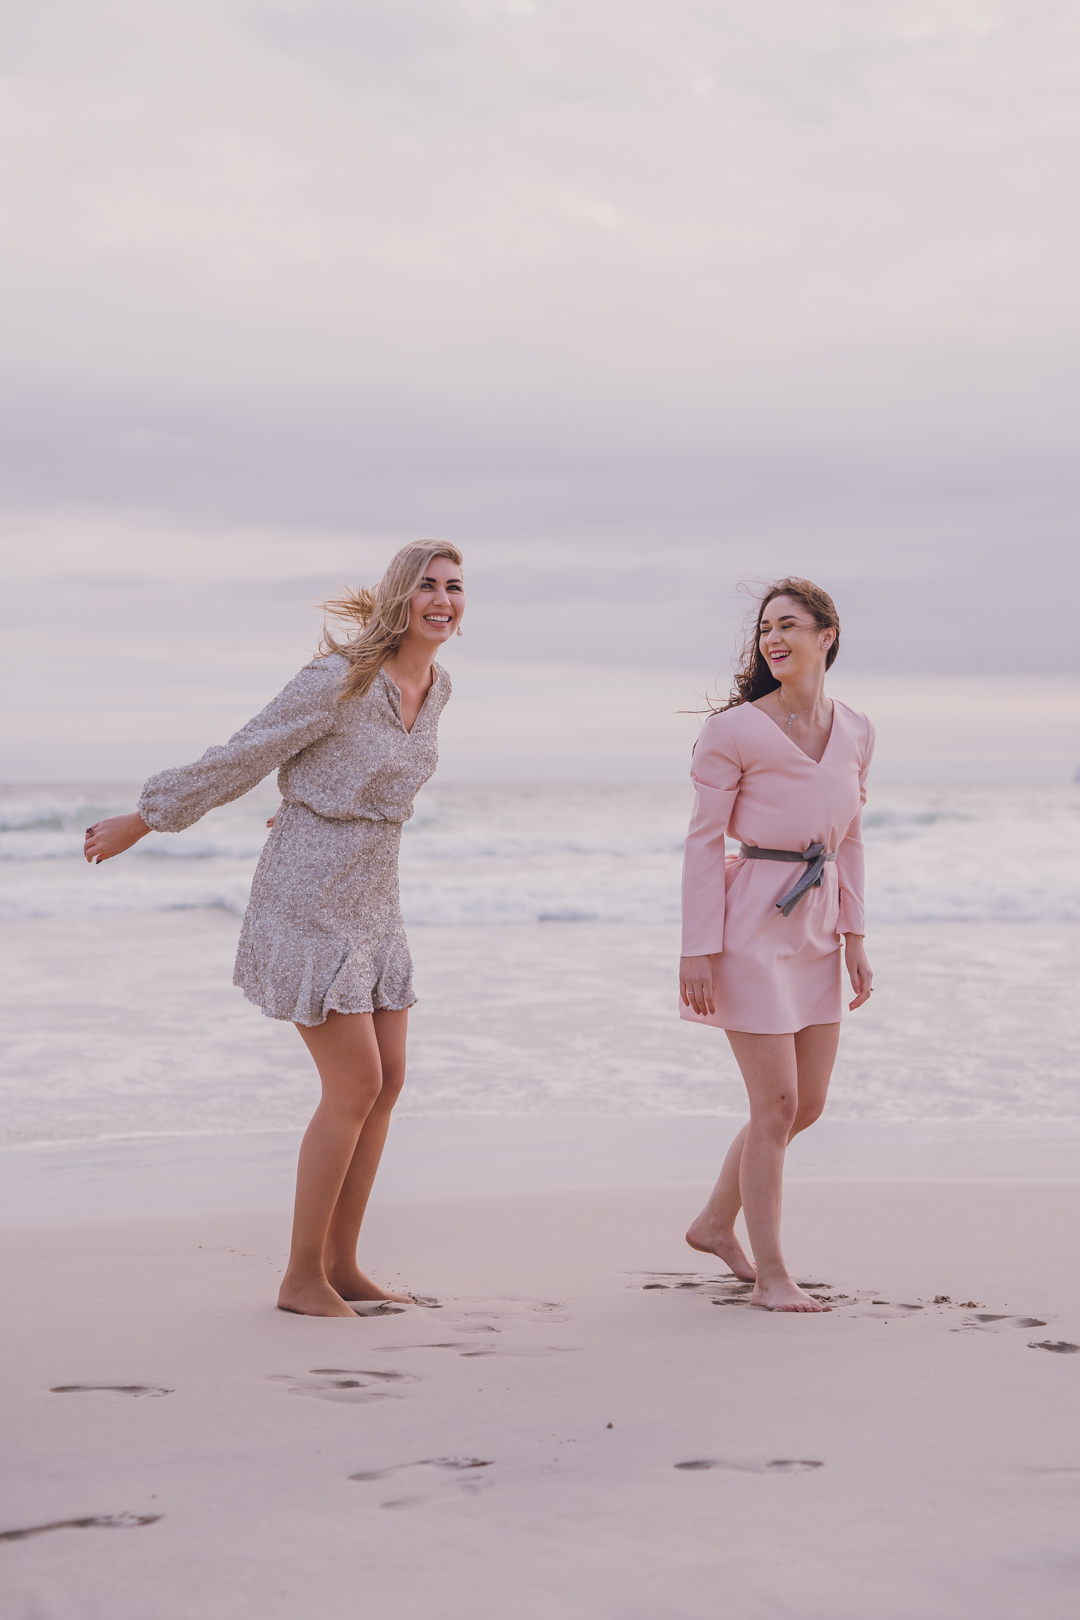 Cape Town Friends Beach_Seaside Photo session by Cape Image Co. (Small File)-2.jpg